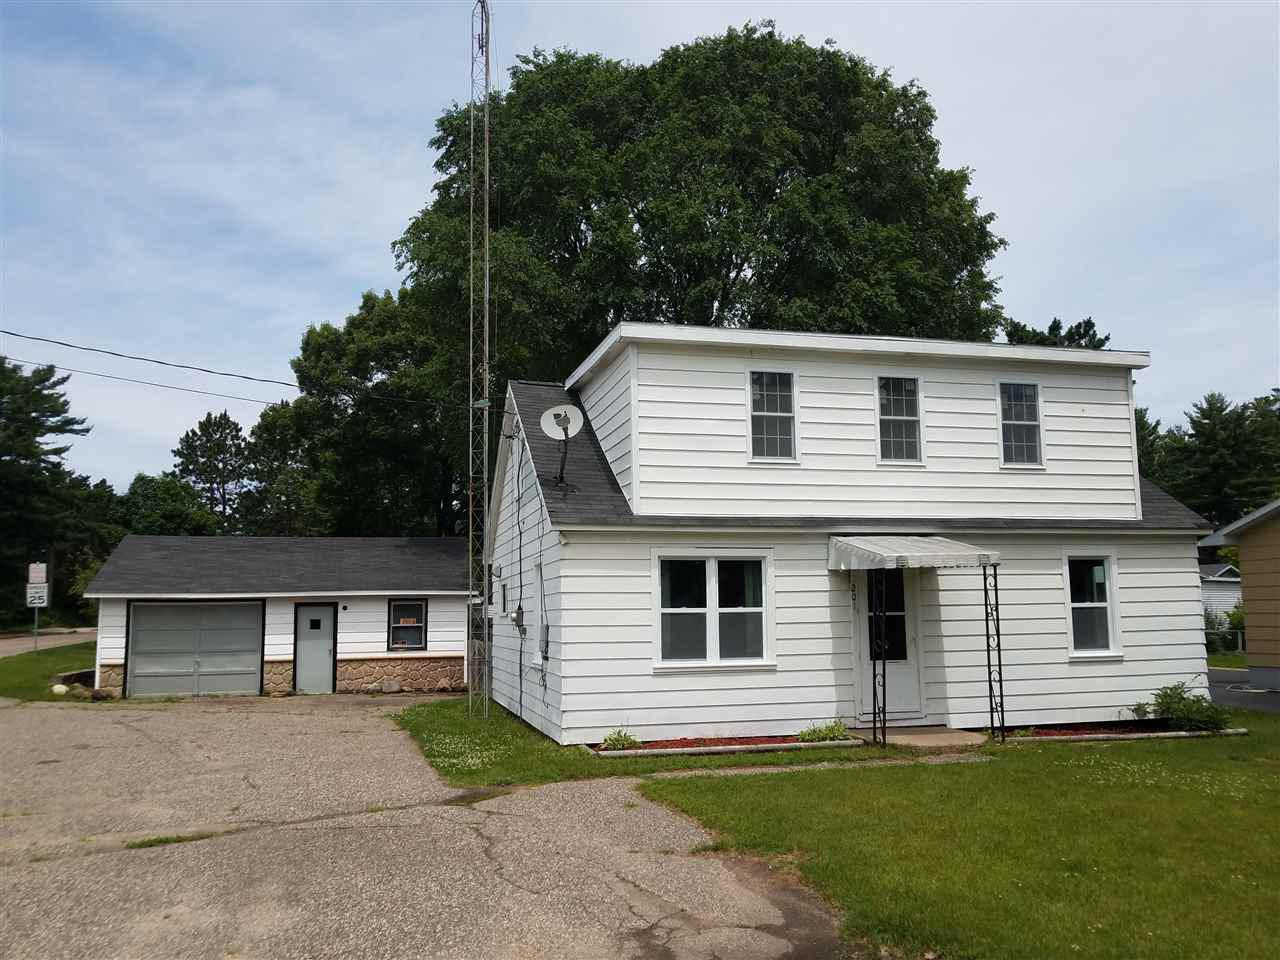 ** No showings until JULY 4TH, 2019 ** This newly updated 4 bedroom property in the heart of Lake Delton has a fenced in backyard and is the perfect family home. Home has new windows/carpet/kitchen cabinets/countertops and a newer furnace. Property includes a large horseshoe driveway along with an oversized 26x22 garage. Within walking distance of restaurants, attractions and more. Come view this adorable home today!